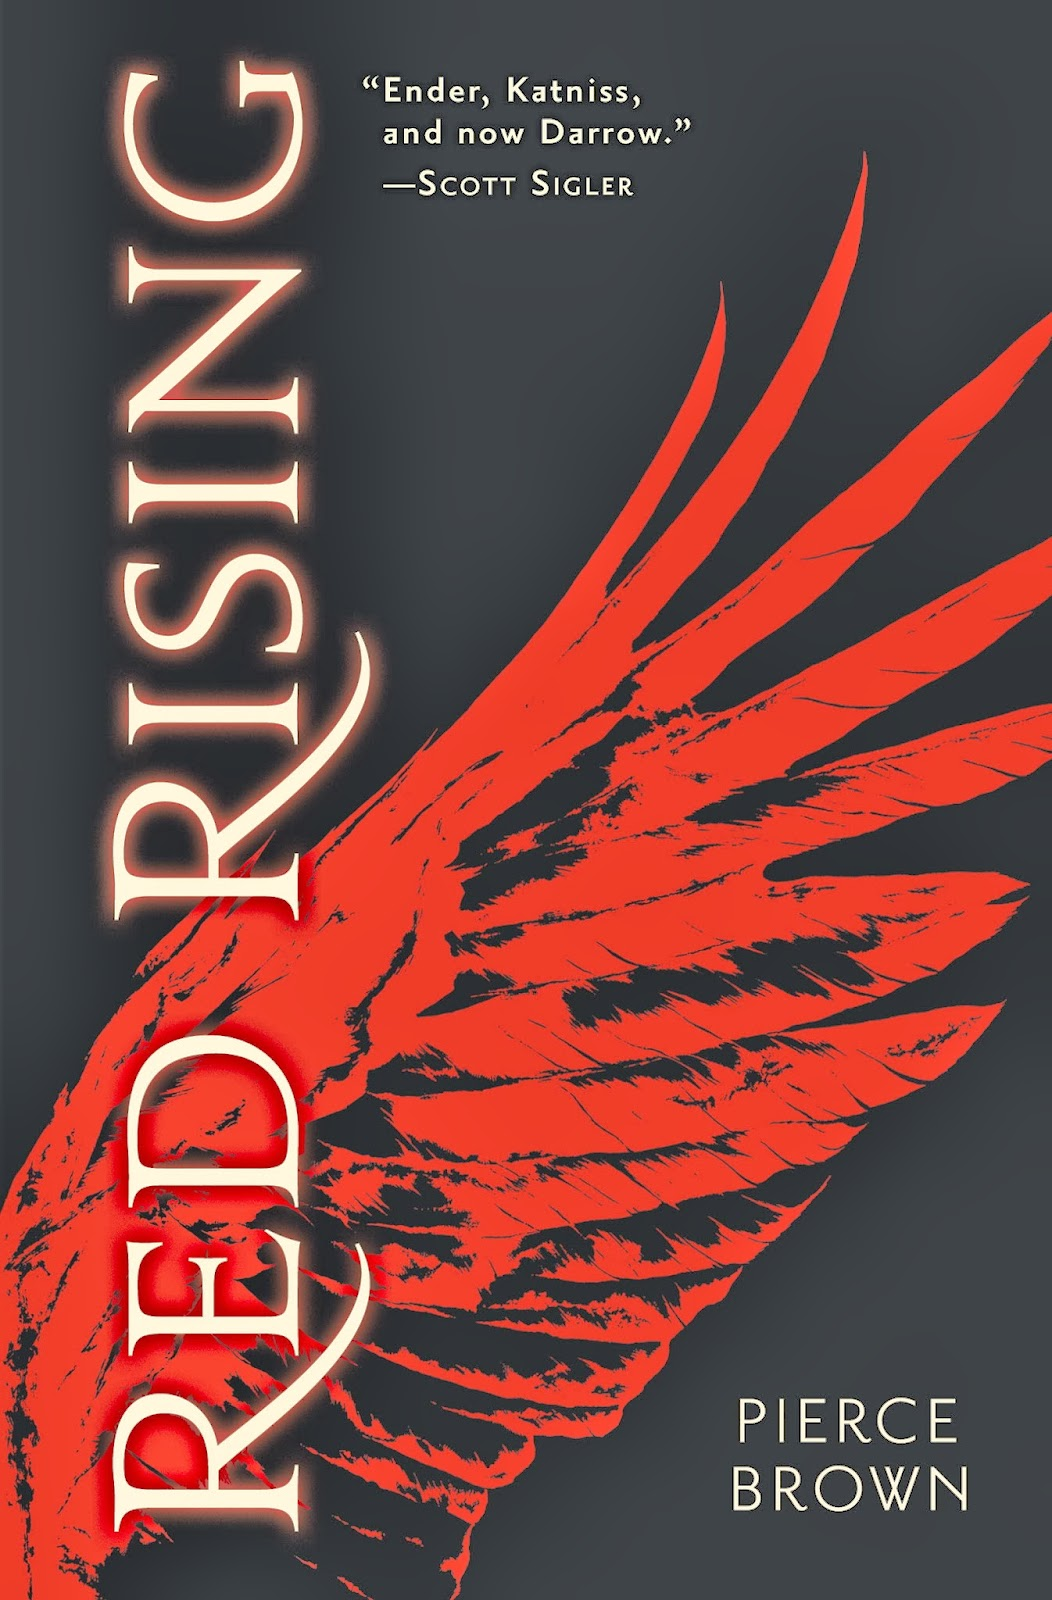 Red Rising By Pierce Brown Published By Del Rey €� Random House Hardcover:  9780345539786 Ebook: 9780345539793